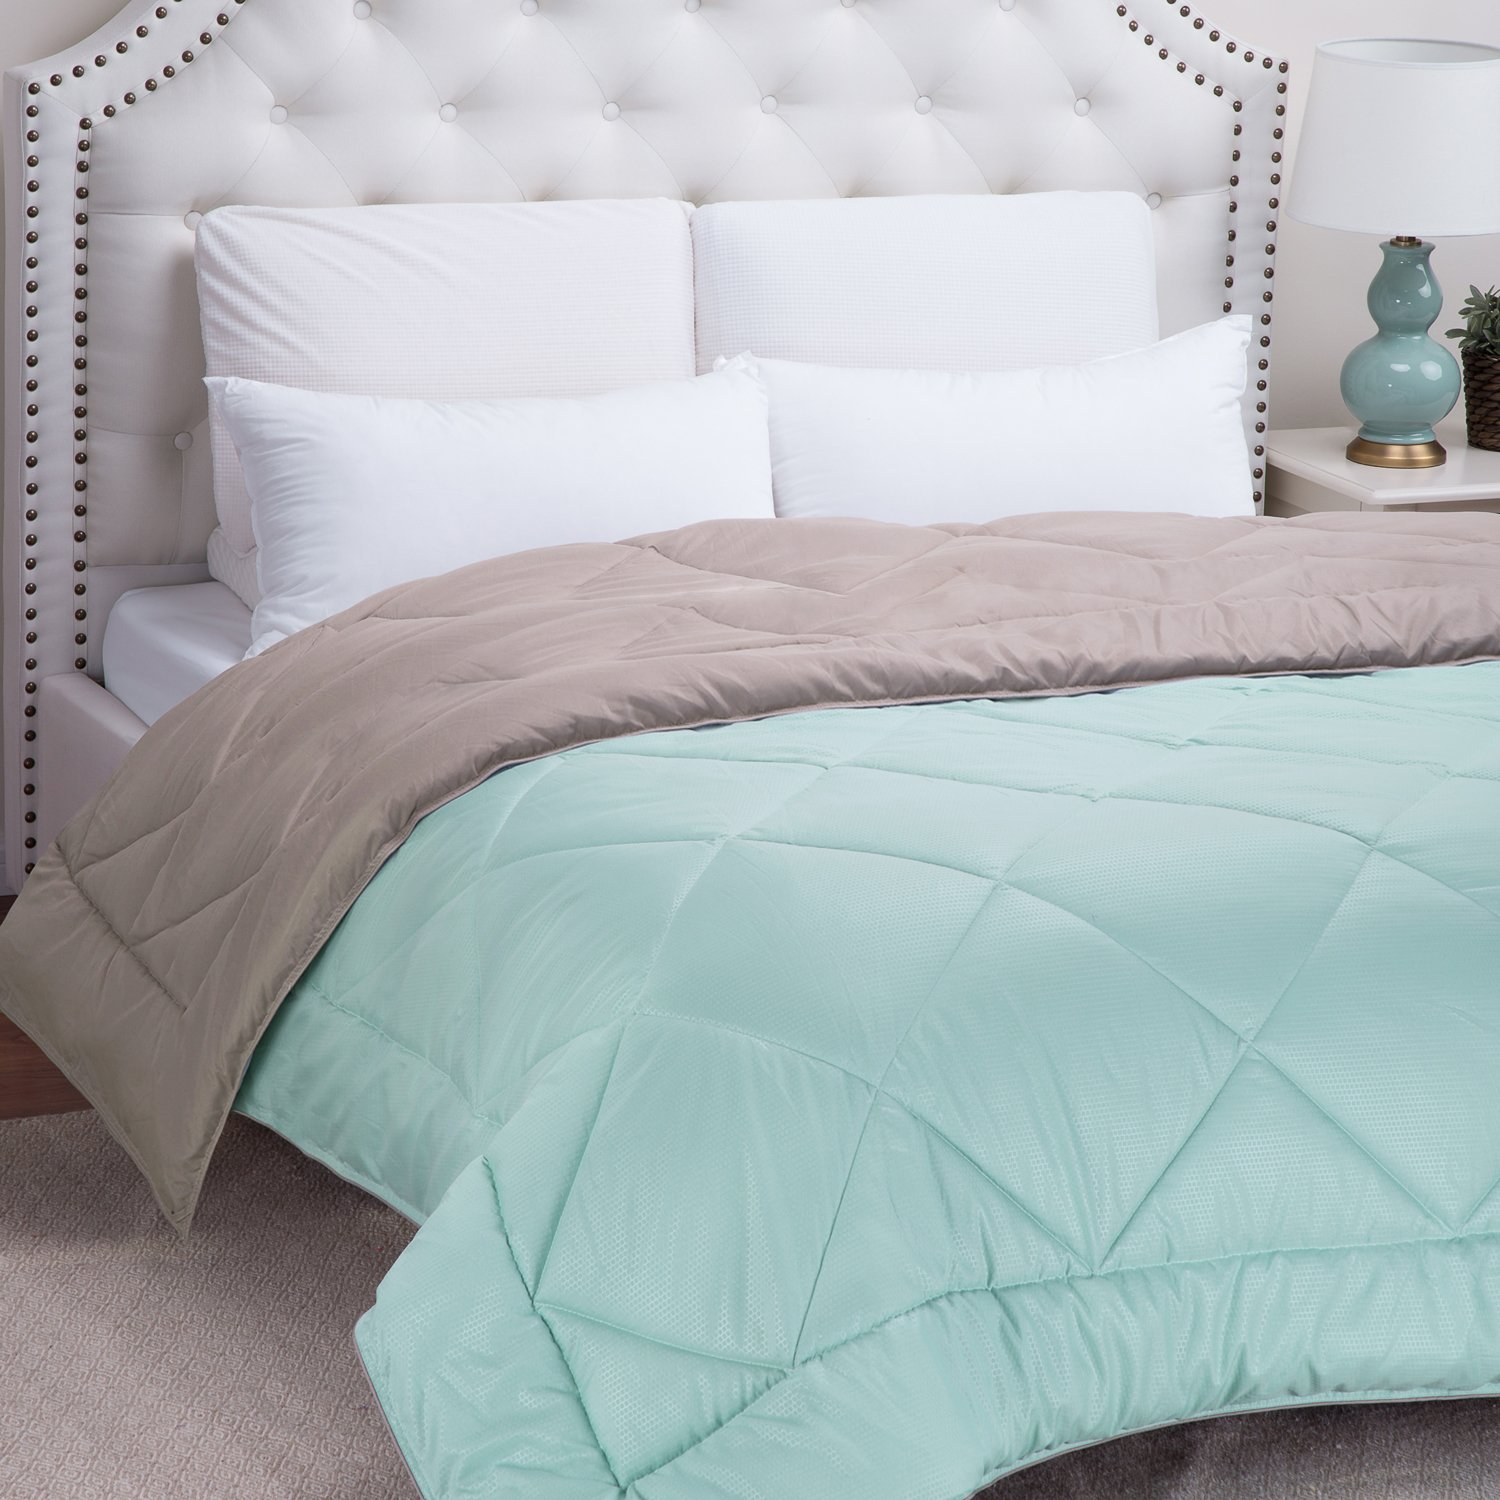 All american collection comforters with more ease bedding with style for Home design alternative comforter